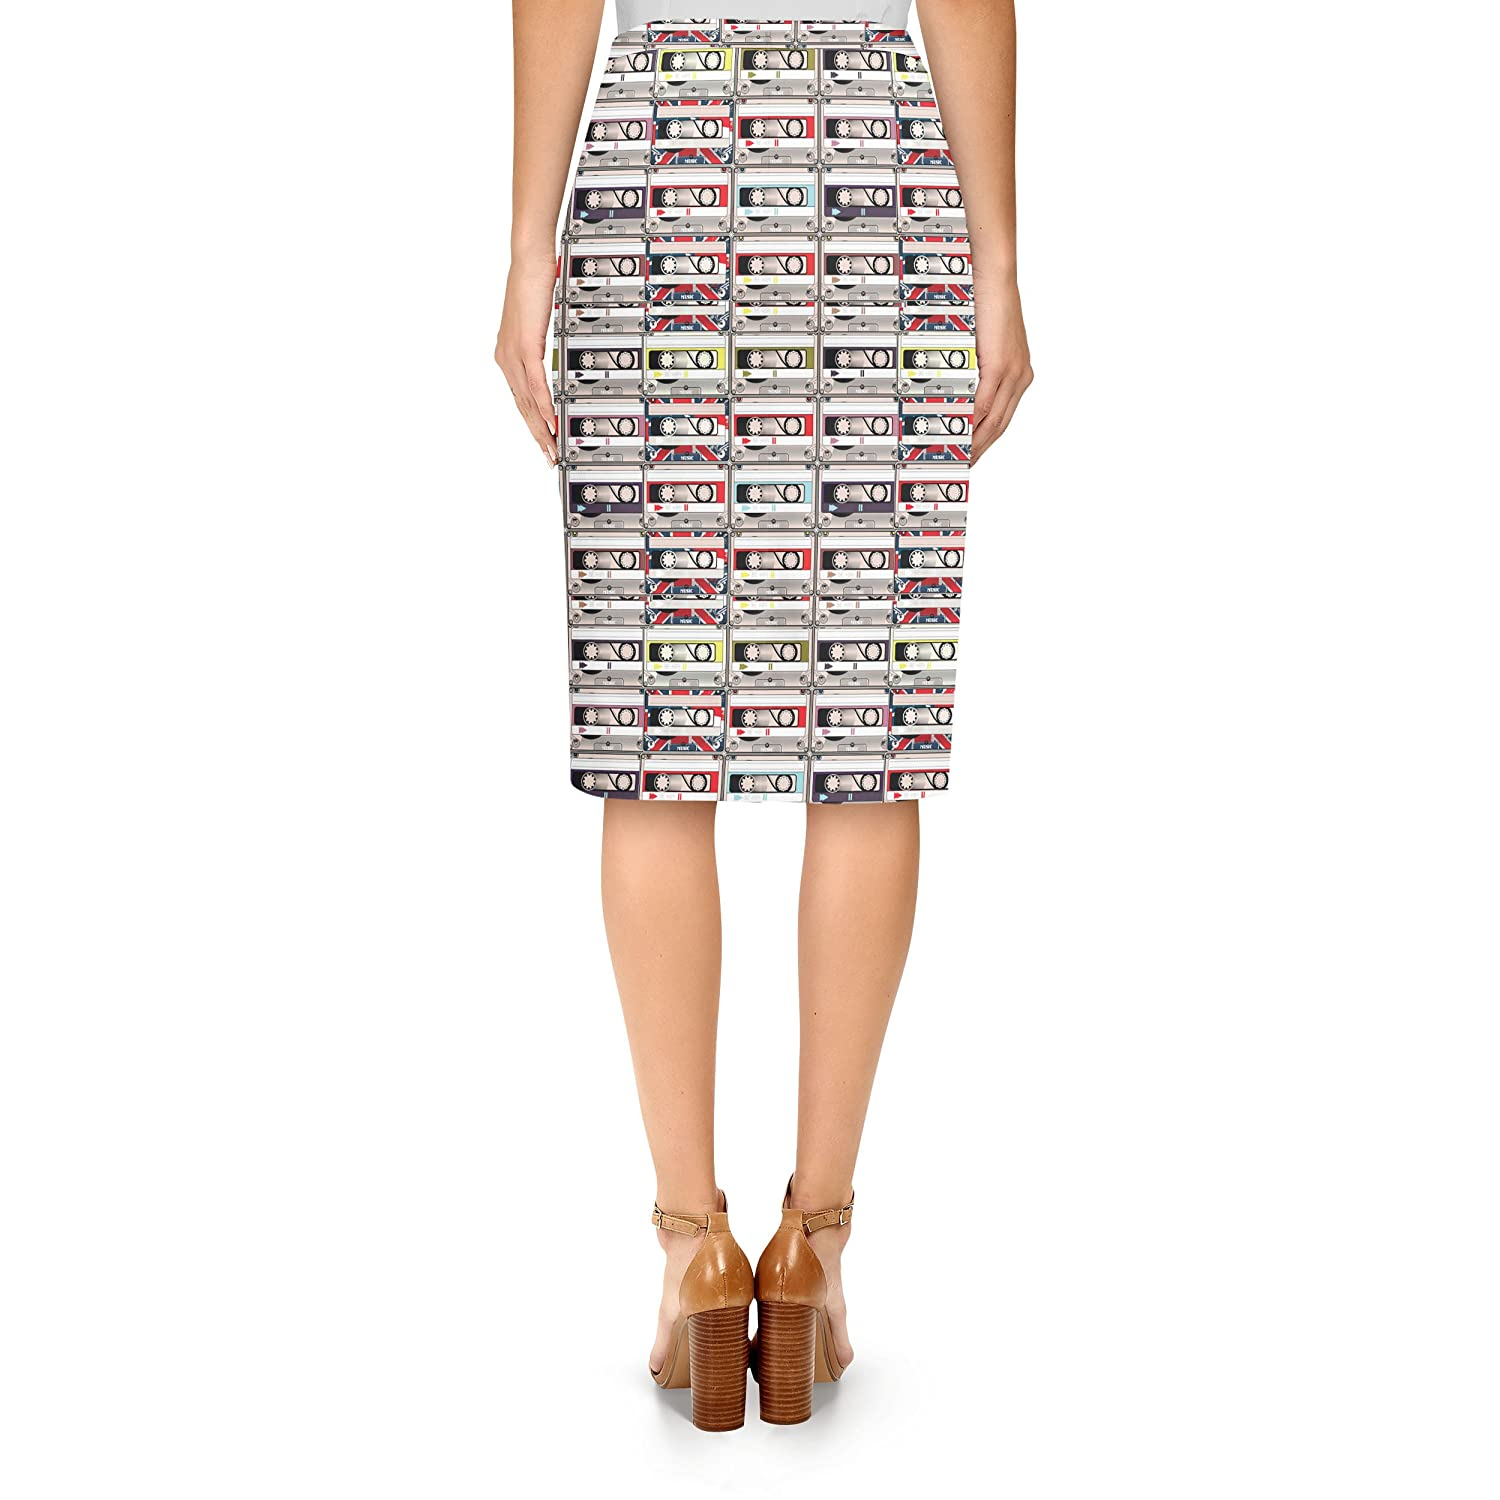 e2e9783ff8 Amazon.com: Retro Cassette Tapes Midi Pencil Skirt: Clothing